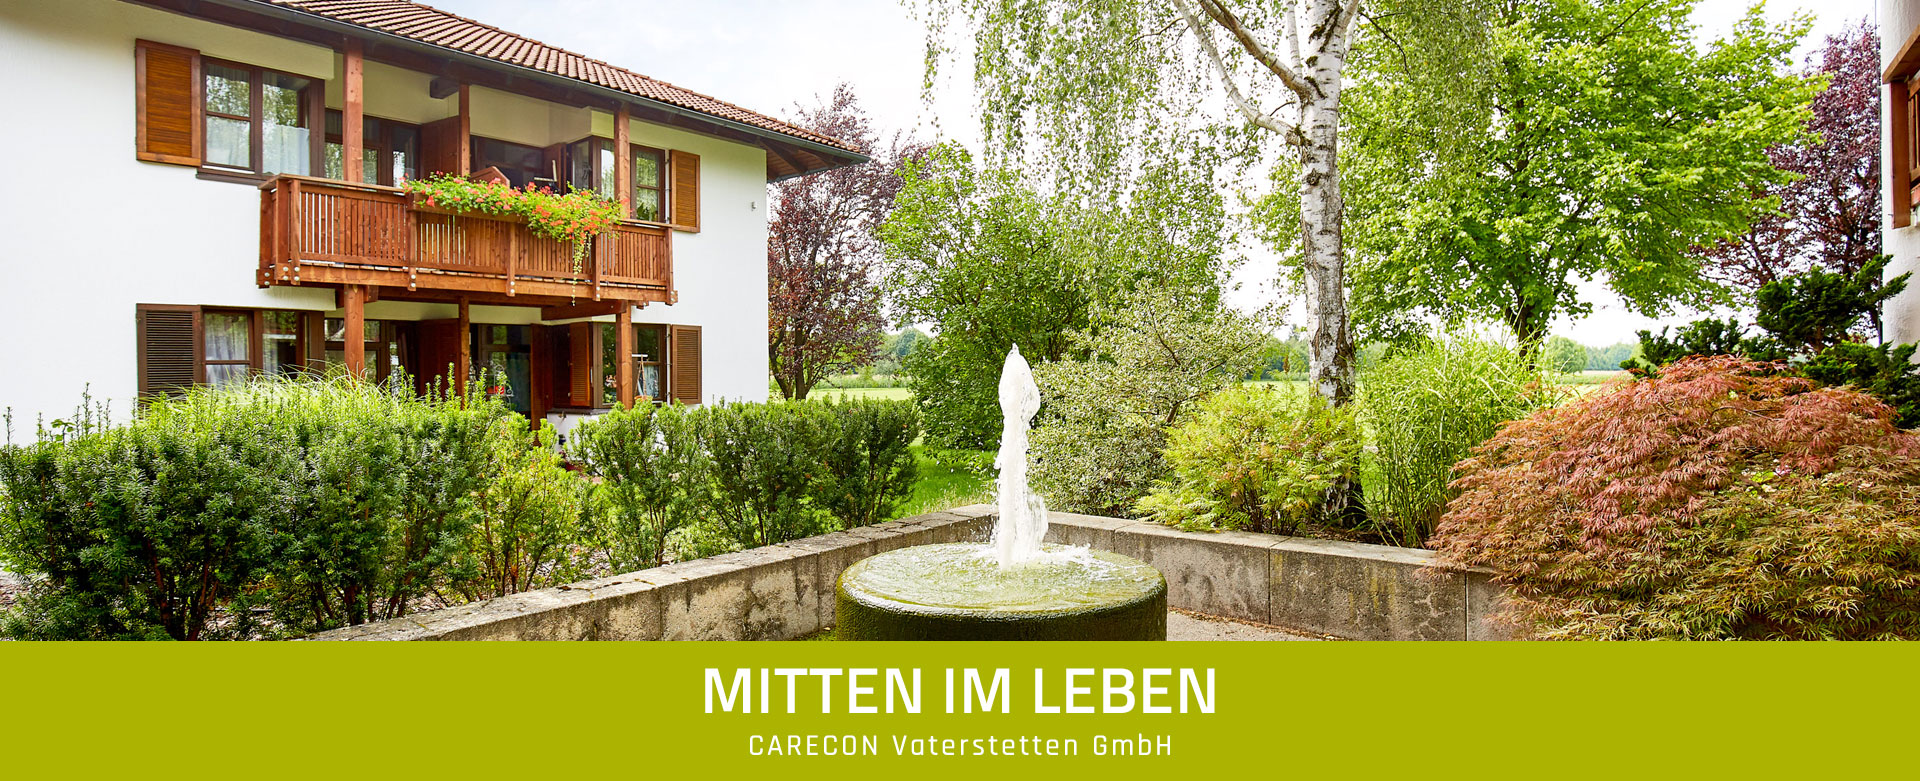 carecon seniorenwohnpark vaterstetten downloads